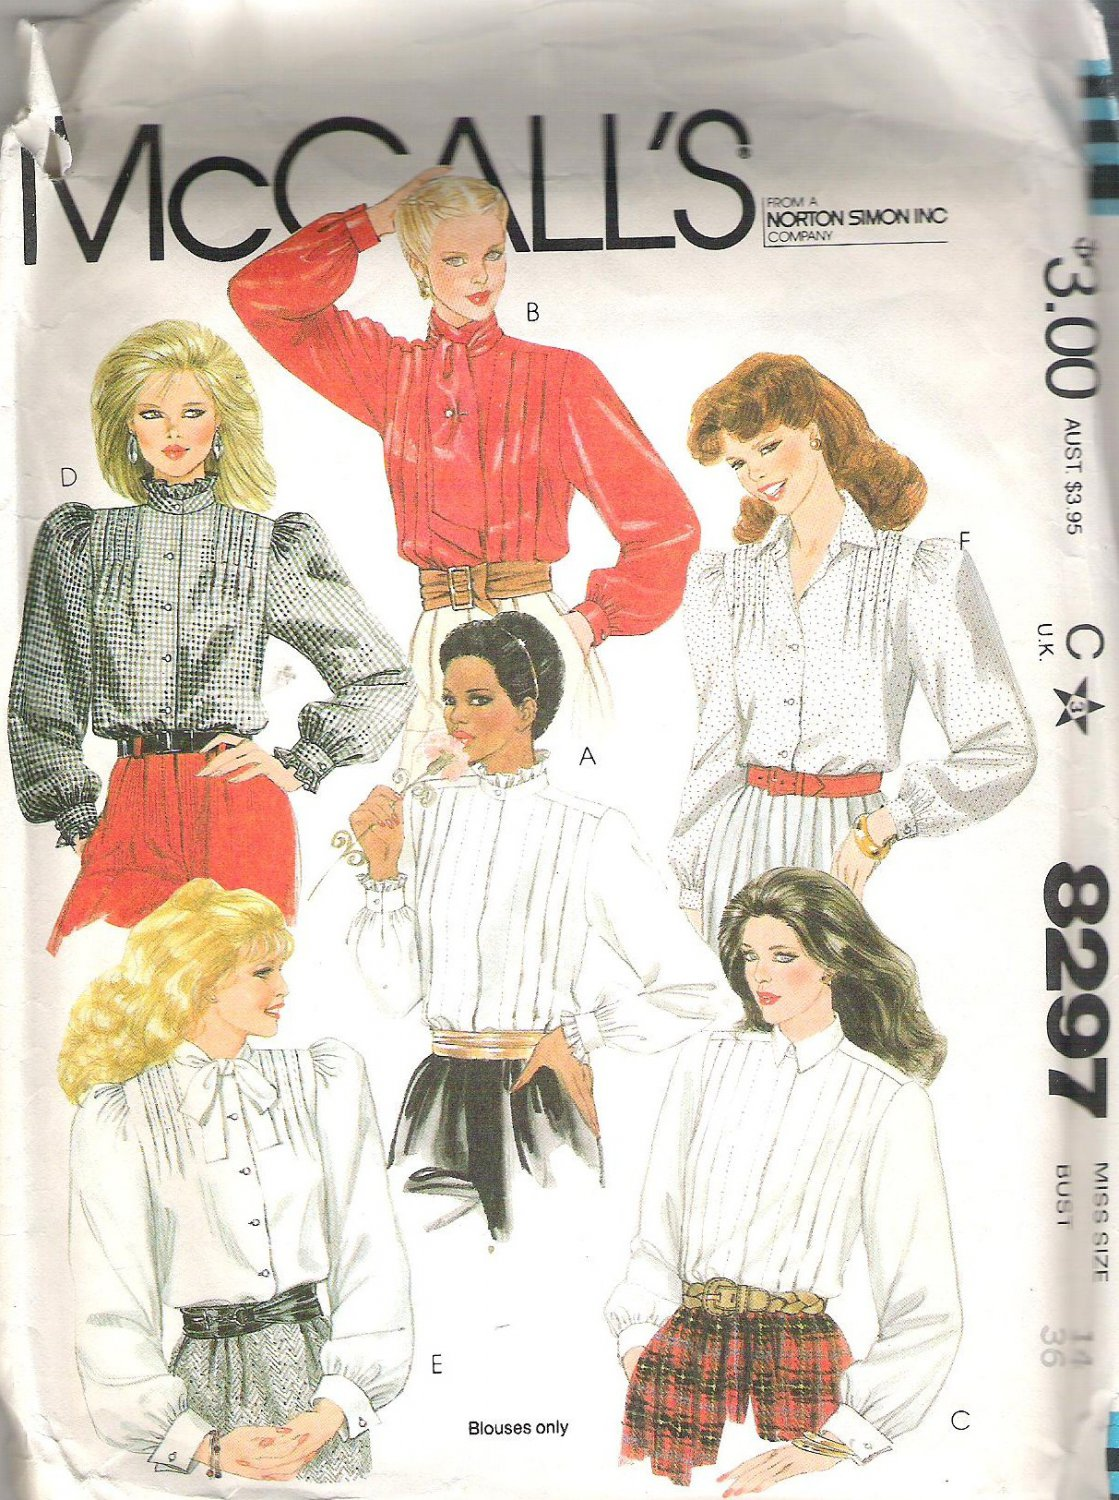 1982 McCalls 8297 Pattern Buttoned Blouses Tucked Front Collar & Cuff Variations Size 14 Cut